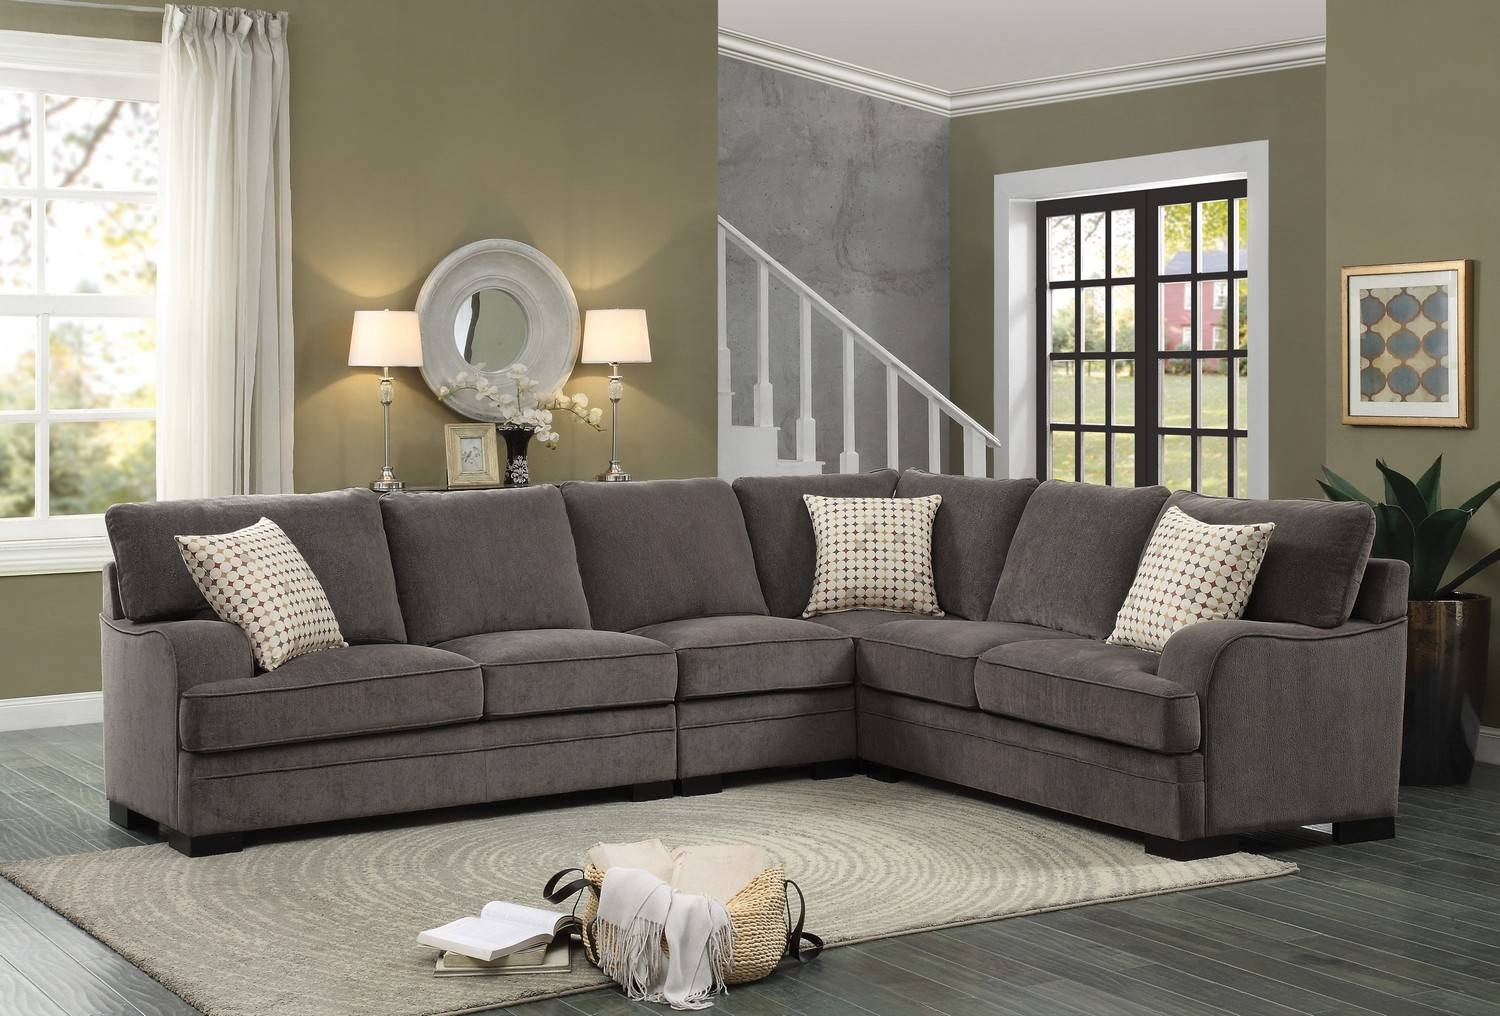 Homelegance Alamosa Sectional Sofa Set - Chenille - Brown 8335 intended for Chenille Sectional Sofas With Chaise (Image 9 of 15)